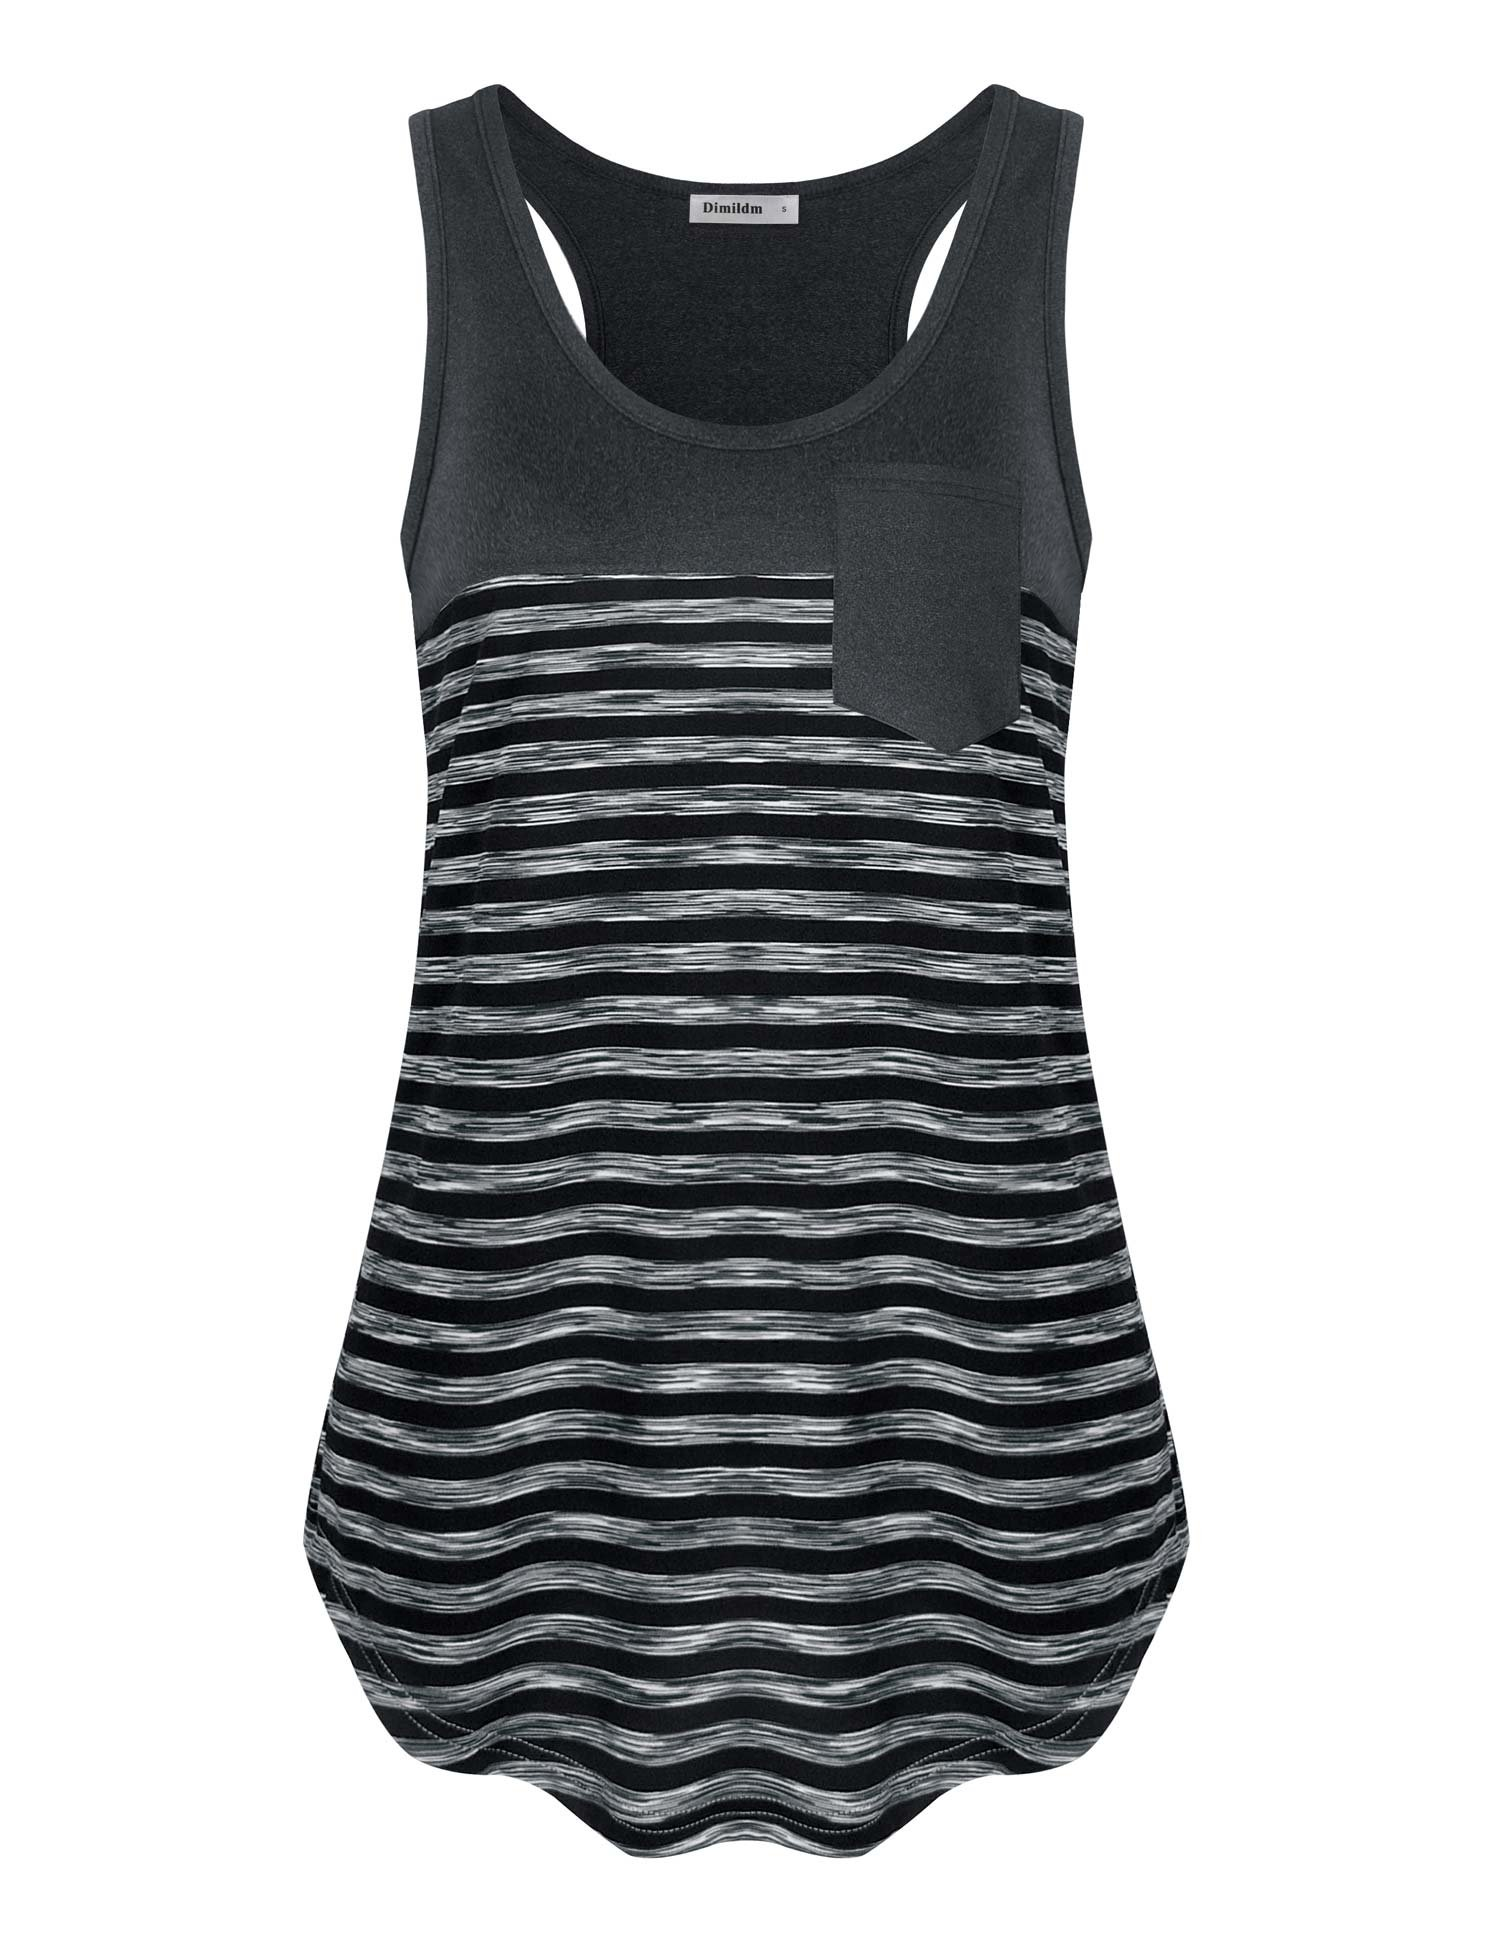 Dimildm Tank Tops for Leggings, Business Casual Tank Tops for Women Sleeveless Flared Hem Flattering Striped Running Exercise Racerback Loose Fiting T Shirts (Carbon Grey,XL)